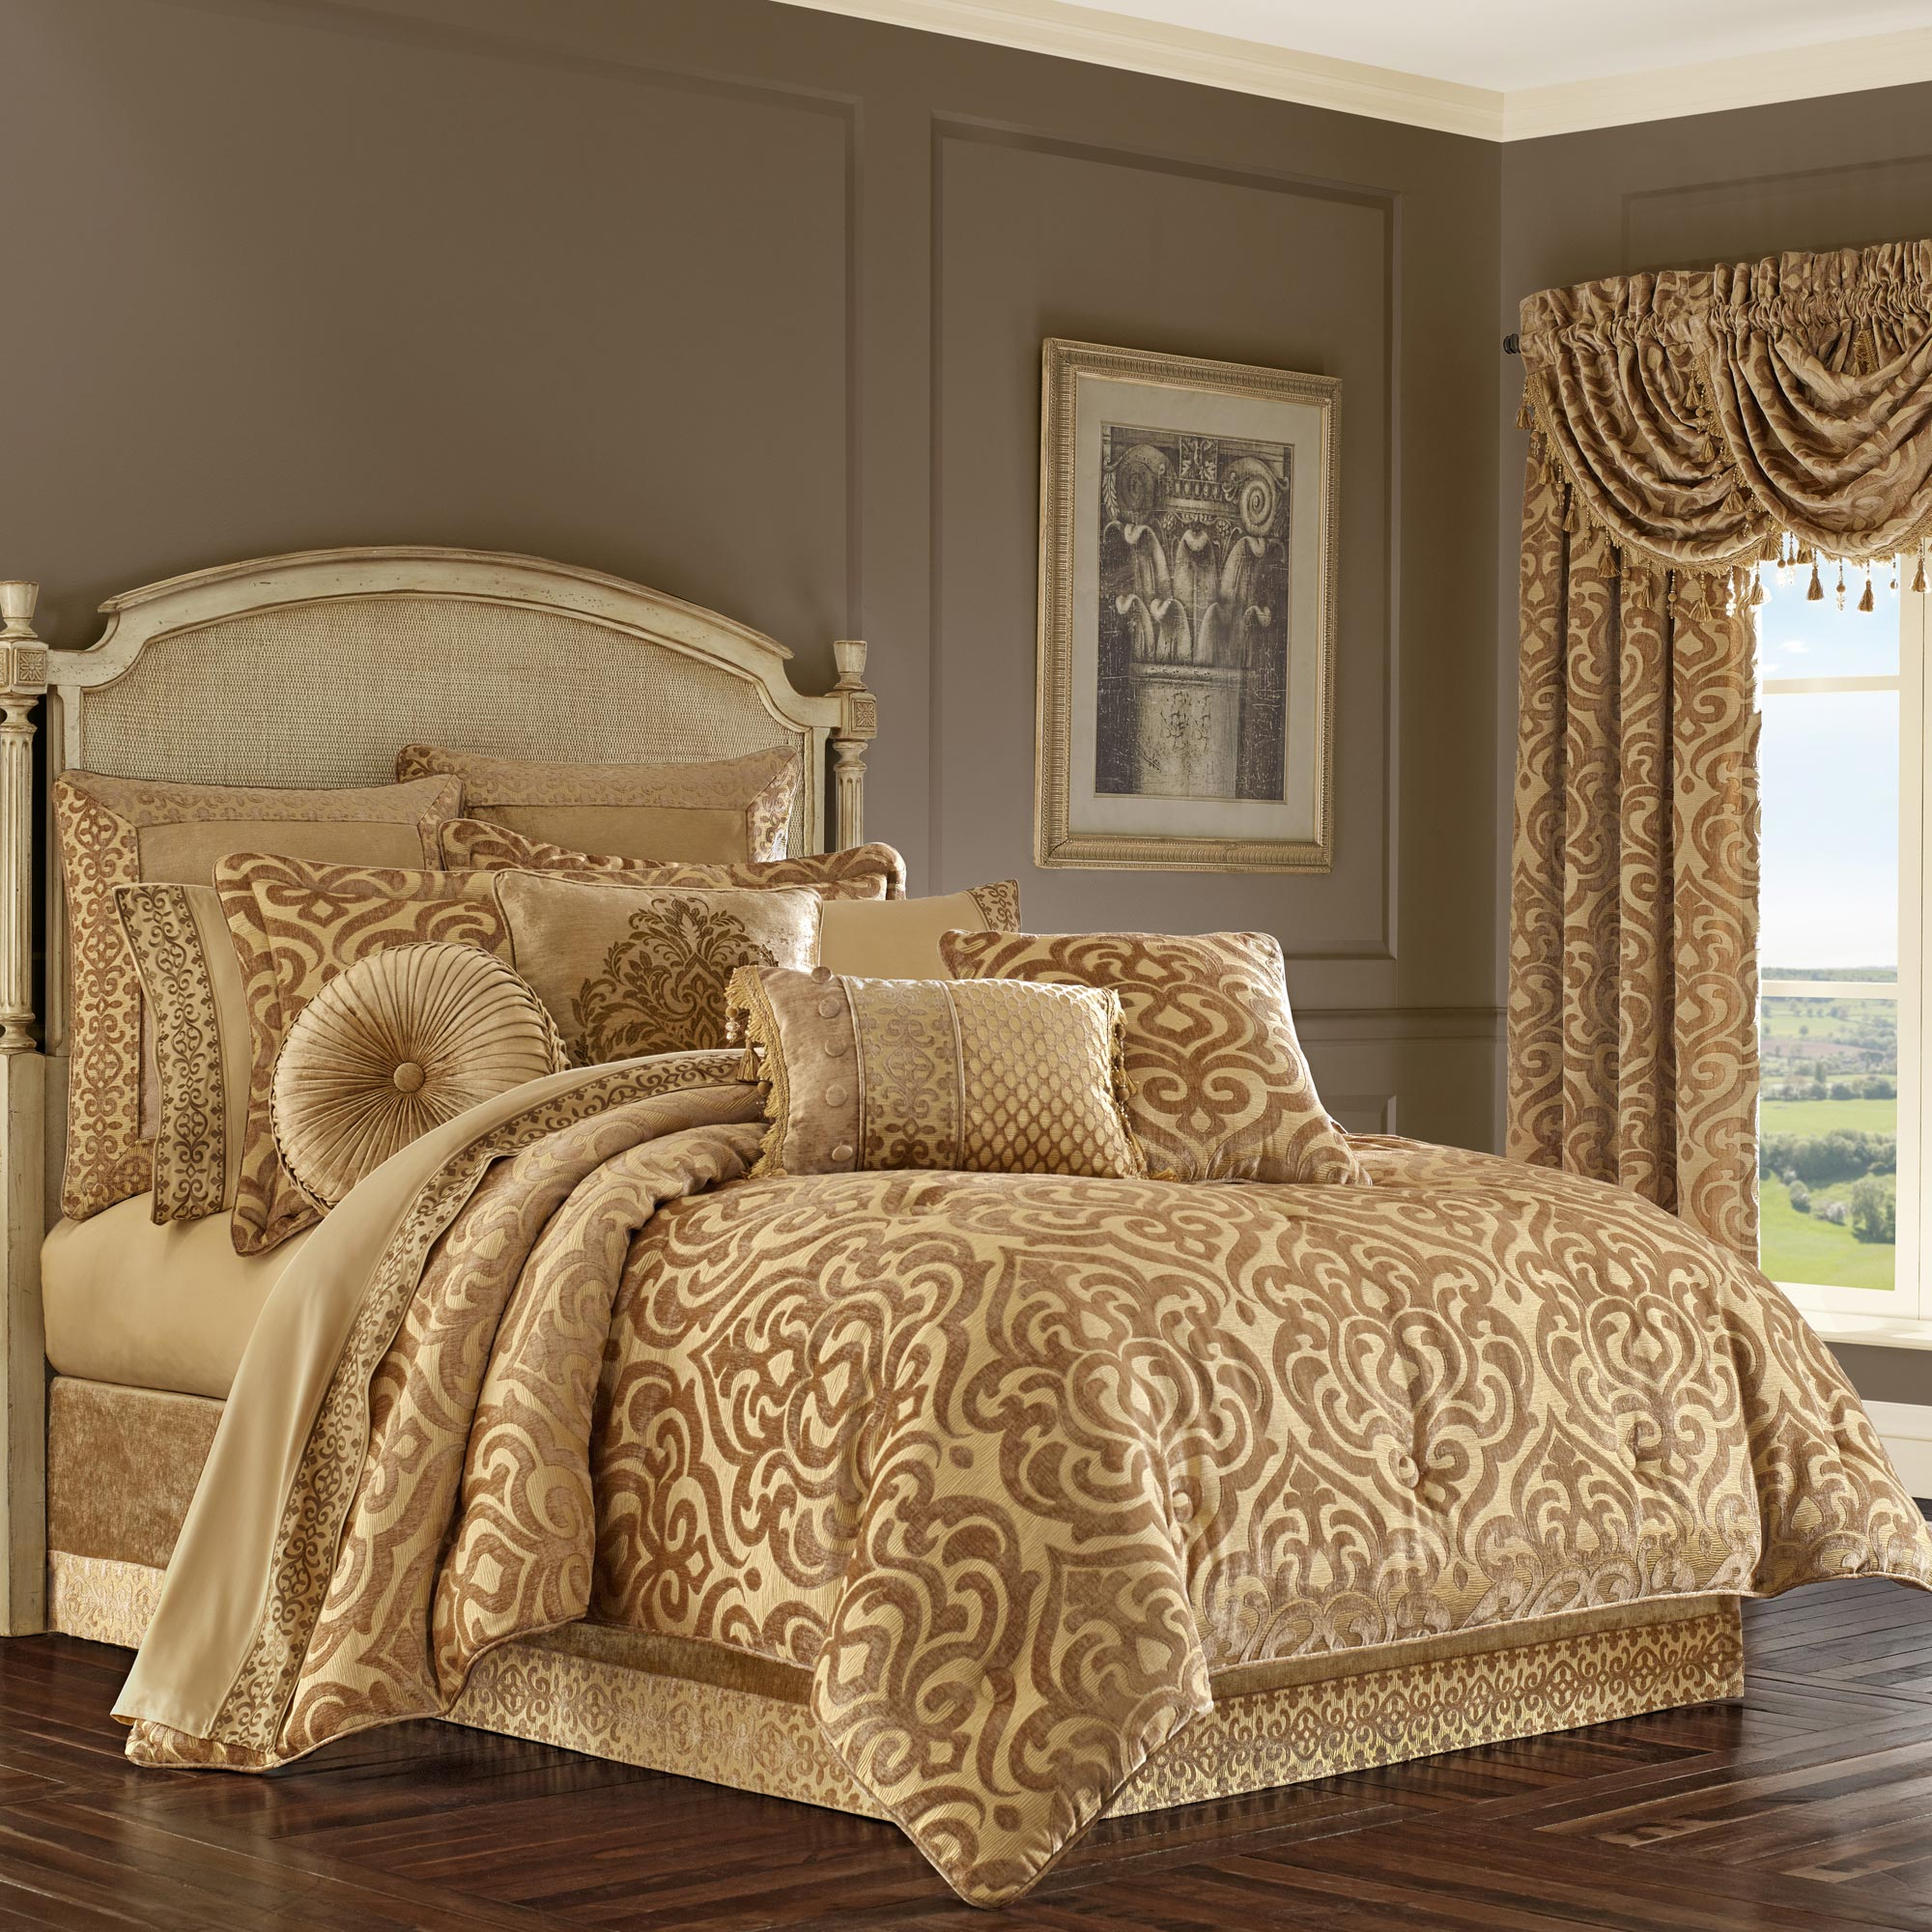 Sicily Gold Cal King 4 Piece Comforter Set